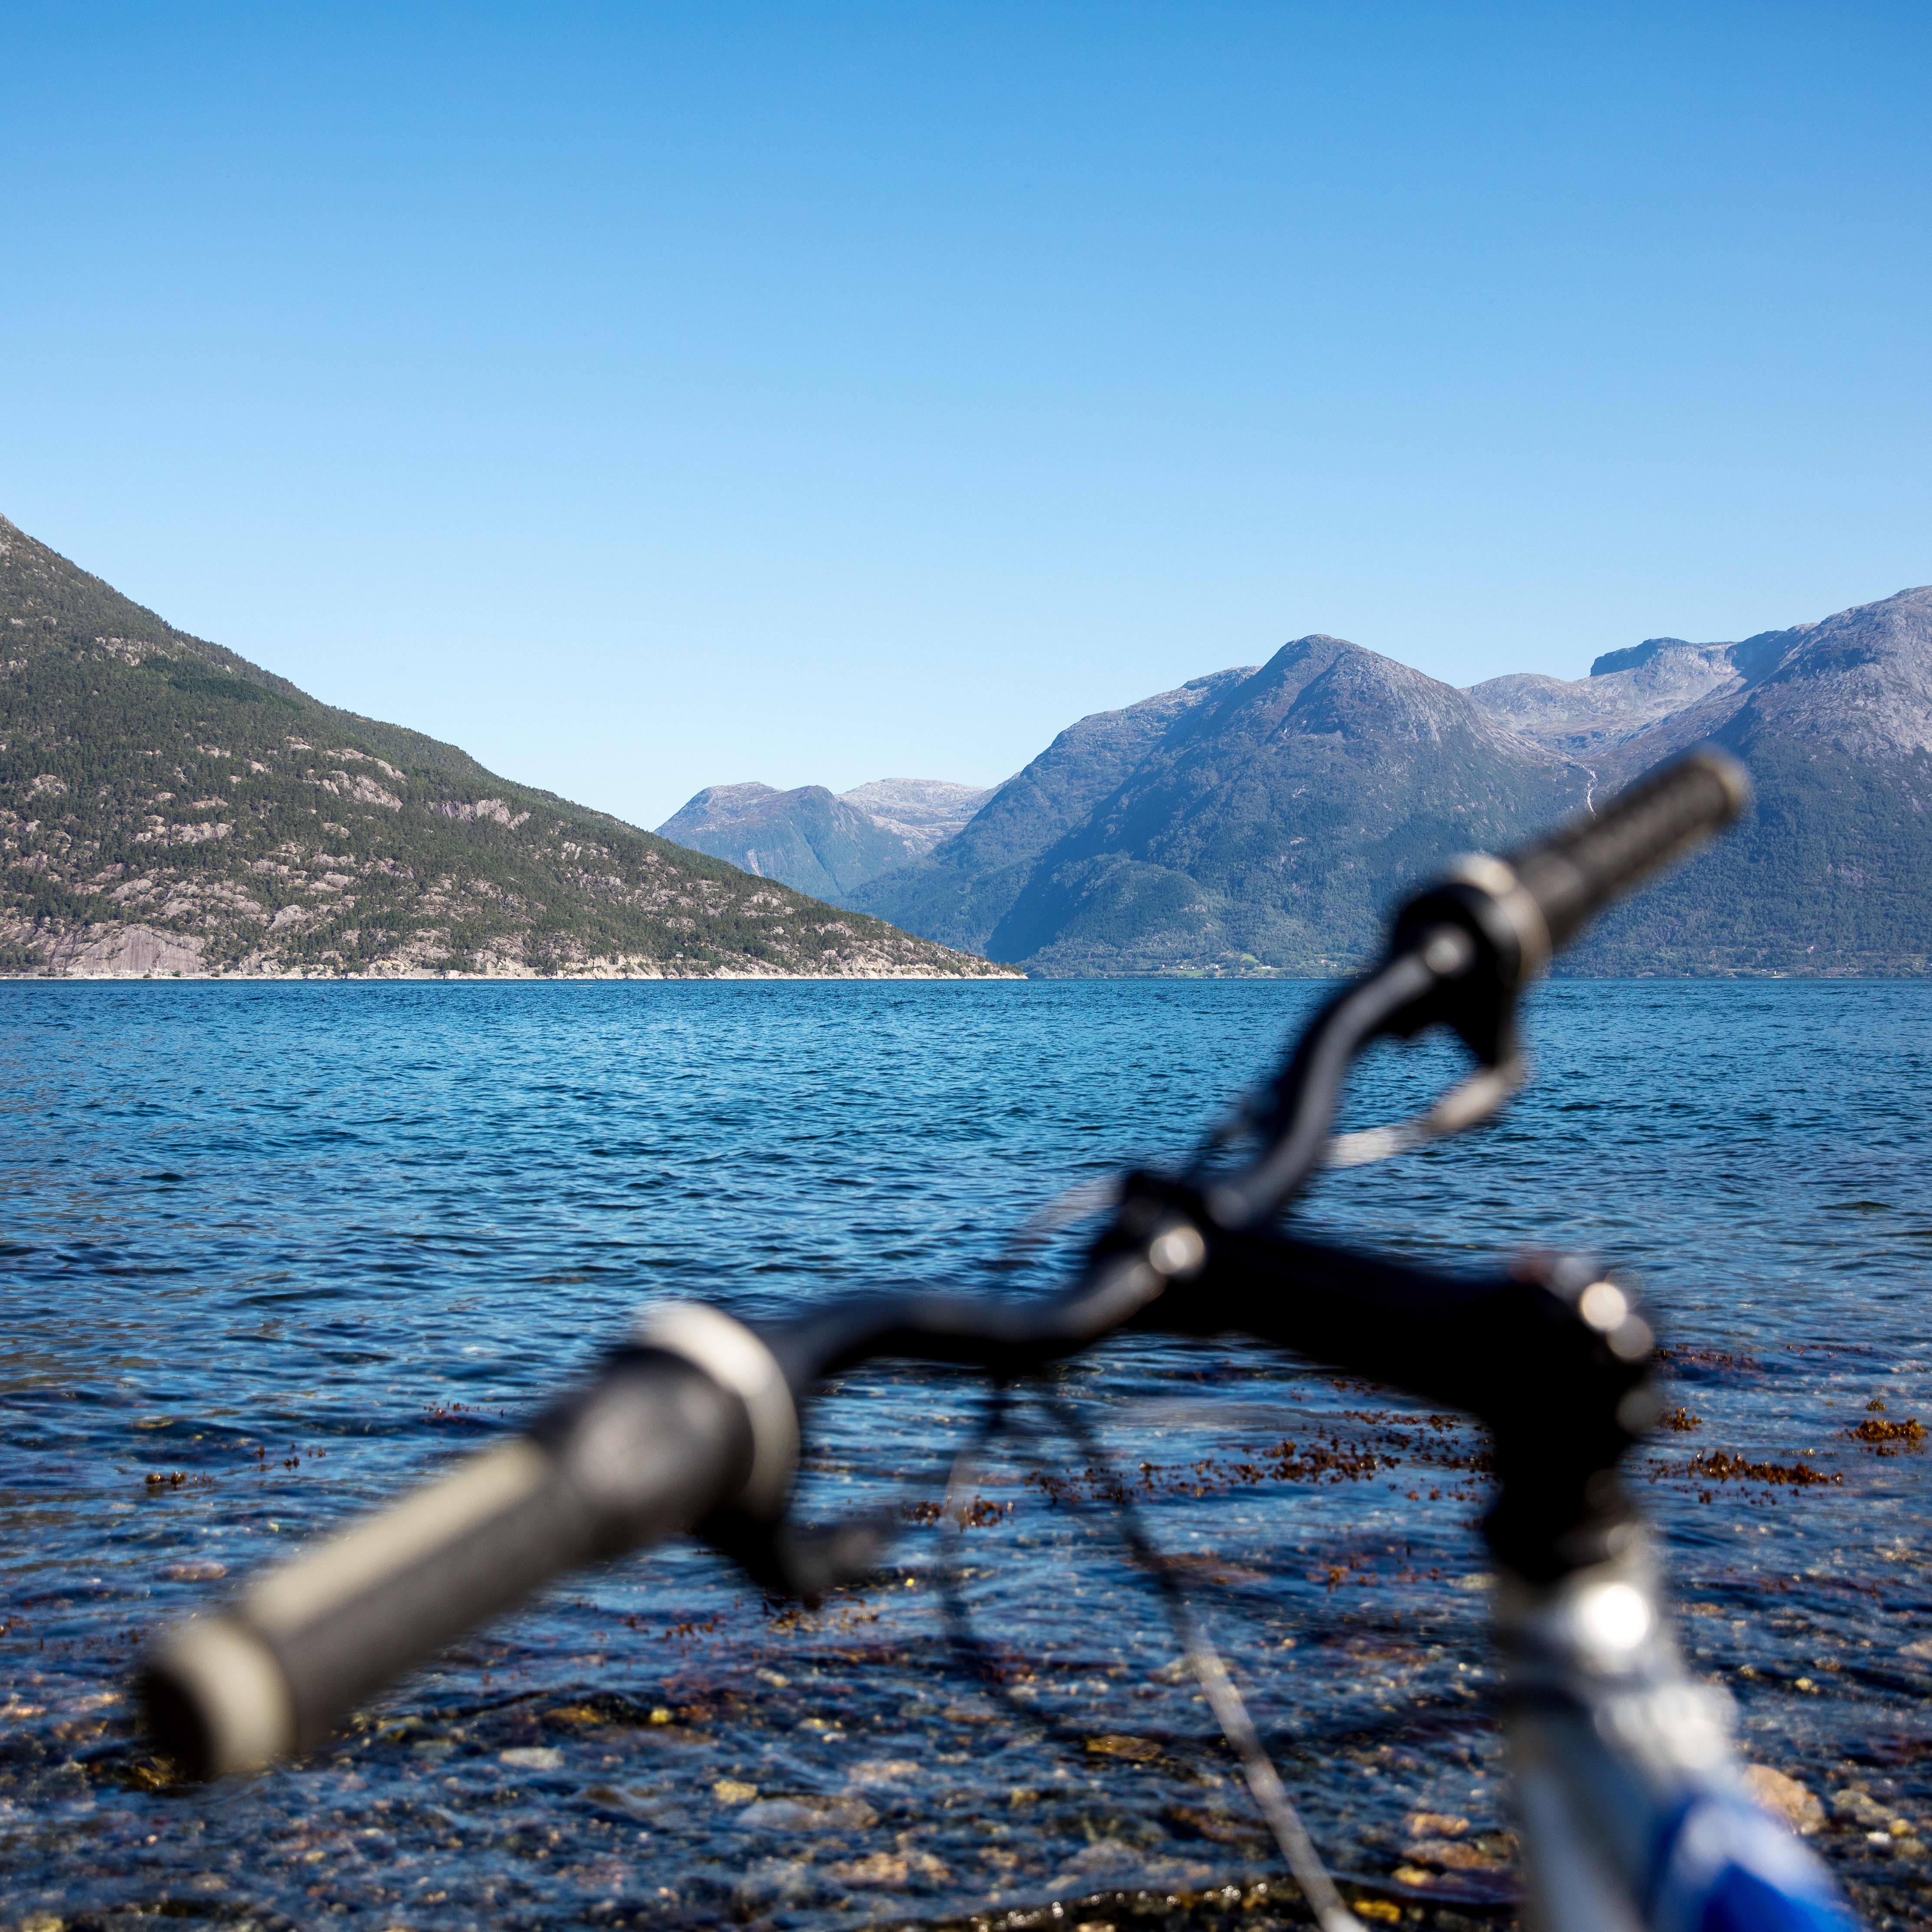 The steering while of a bike facing the blue waters of the Hardangerfjord backed up by rock mountains.